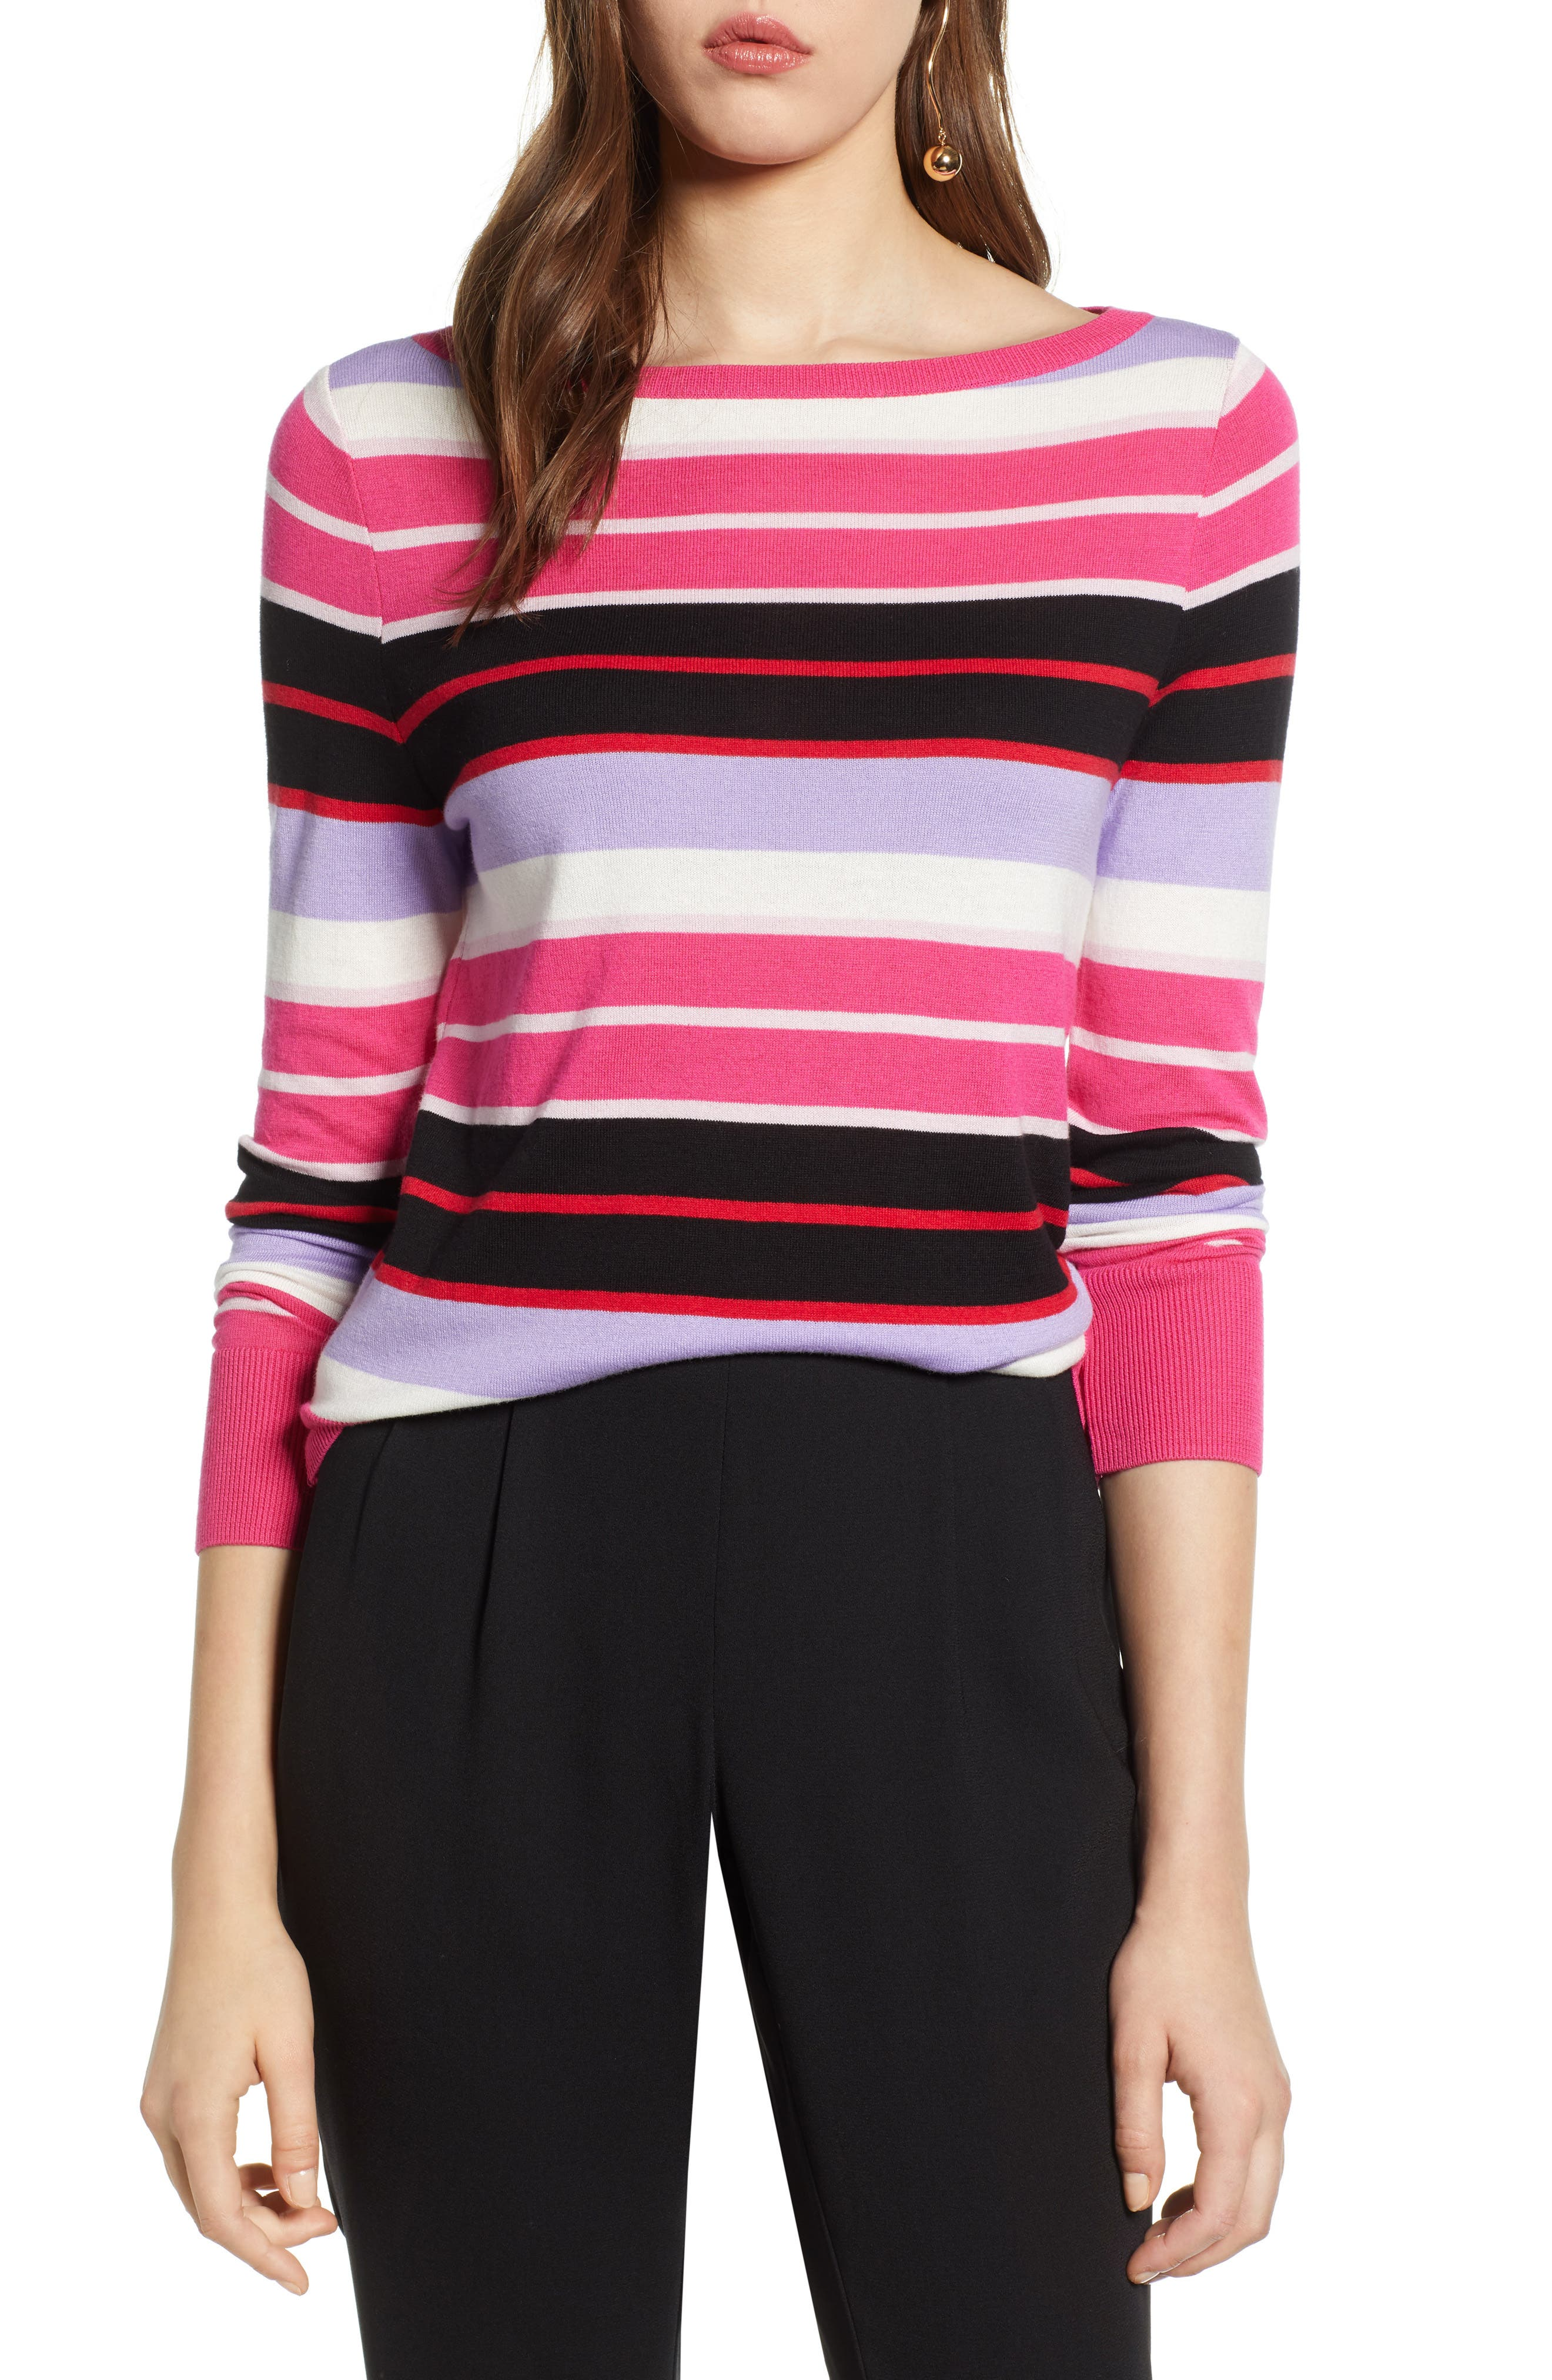 Women's Clothing Clothing, Shoes & Accessories Ann Taylor Pink V Neck Balloon Puff Sleeve Ribbed Sweater Xl Pink Gray Stripe Yet Not Vulgar